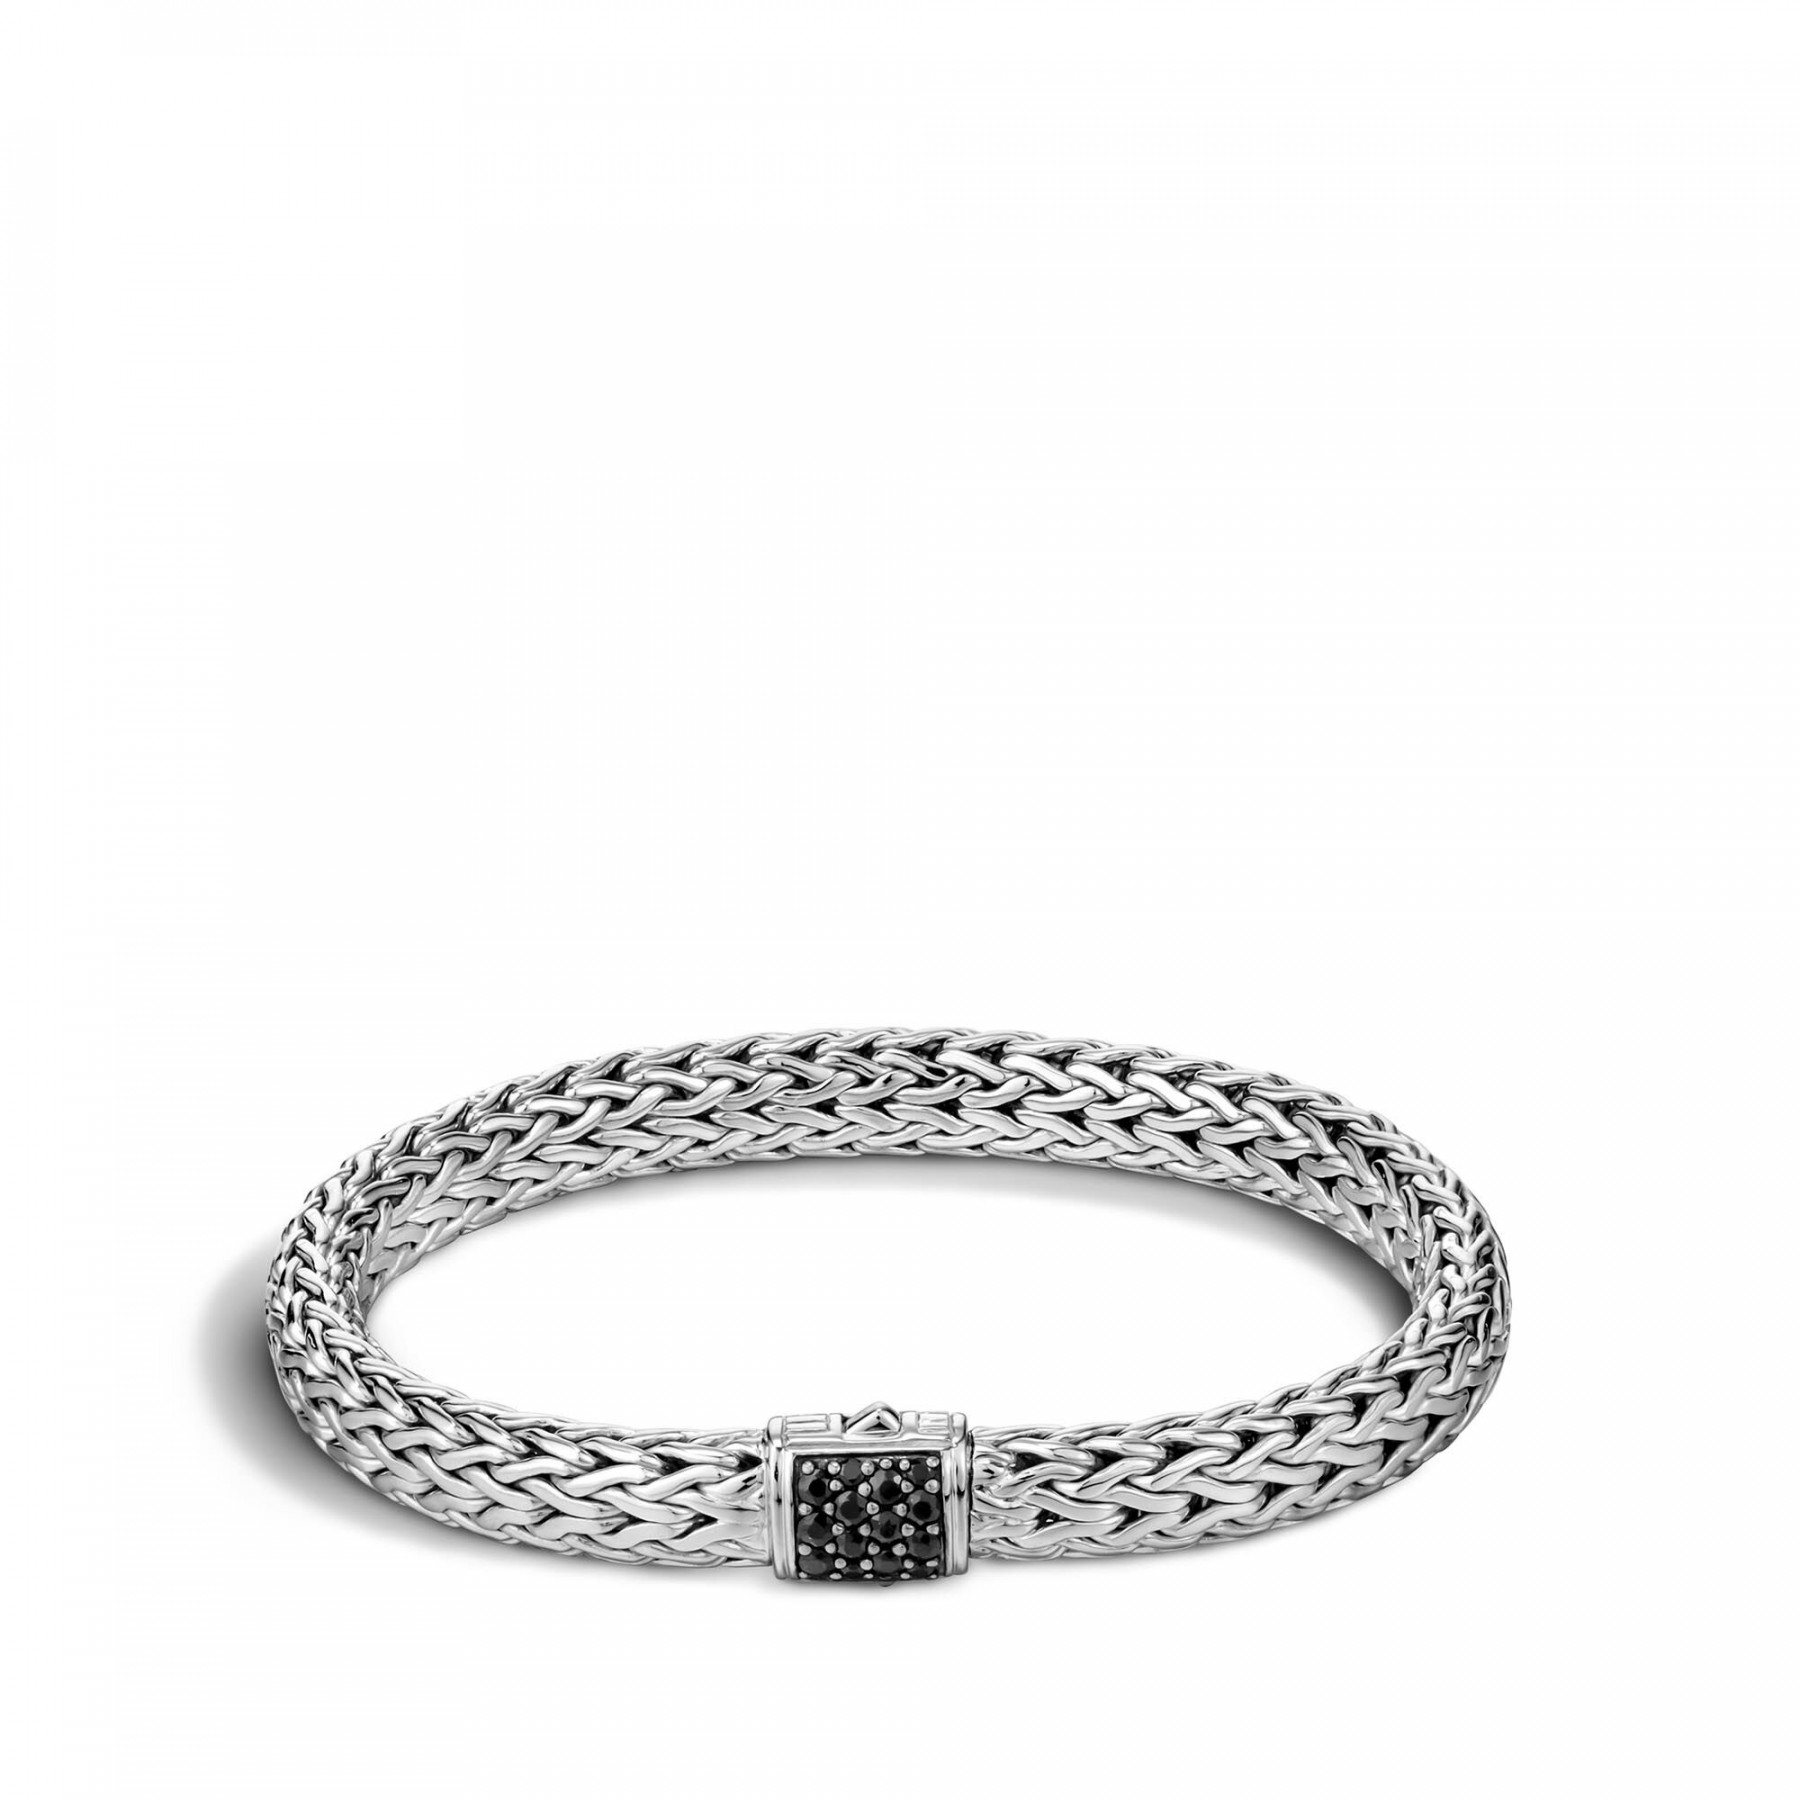 John Hardy Classic Chain Silver 7.45mm Bracelet with Black Sapphire Clasp